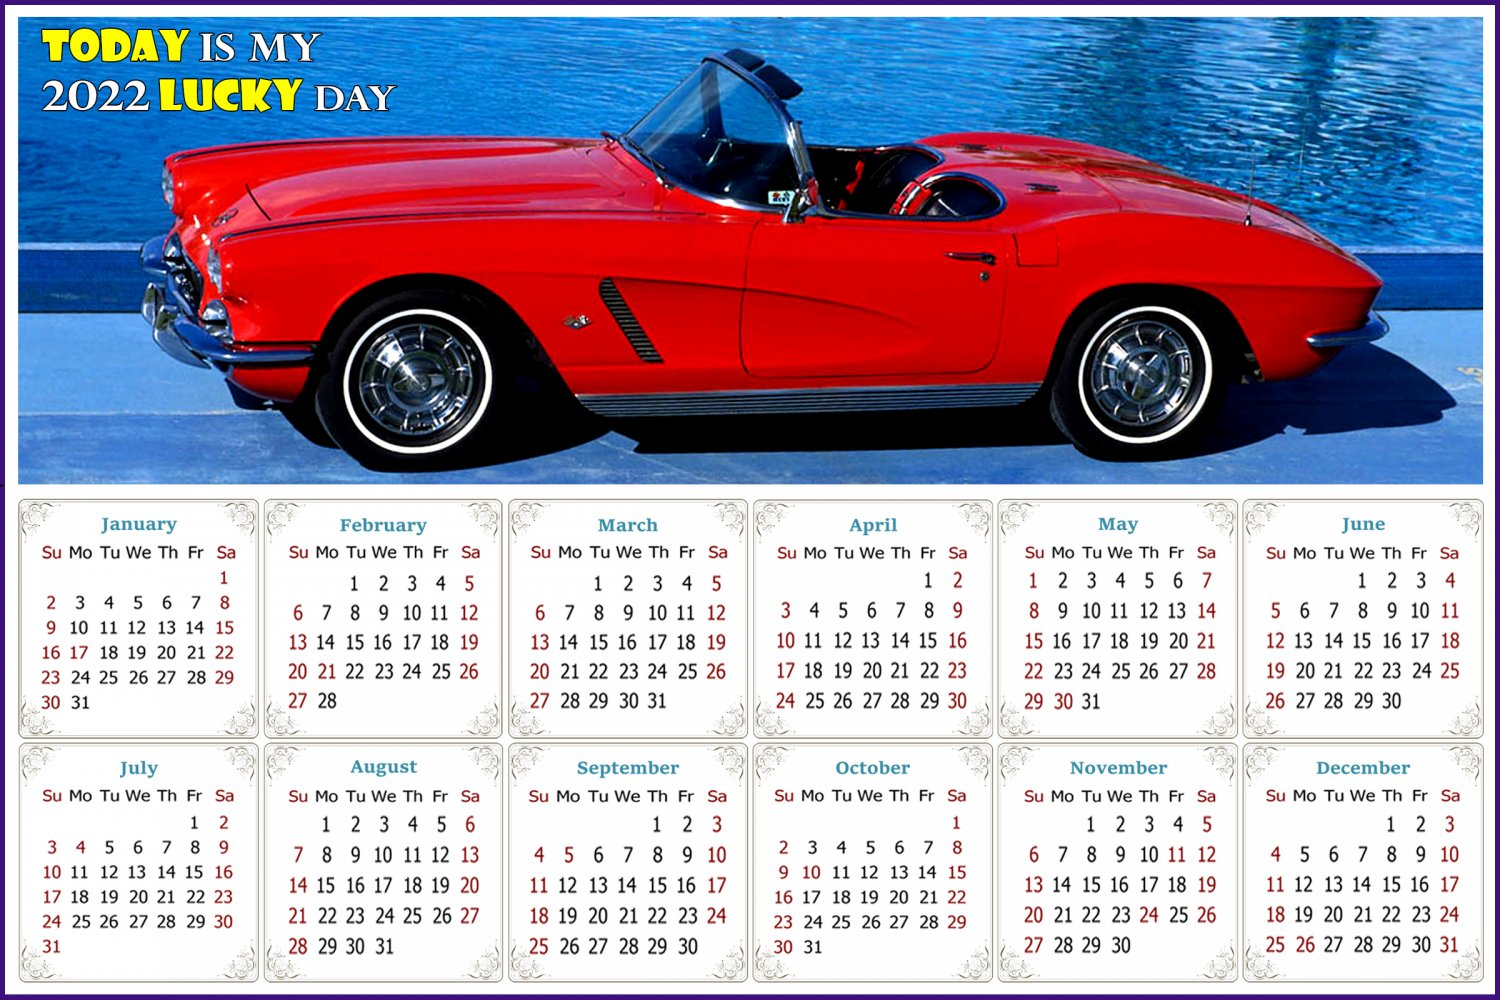 2022 Magnetic Calendar - Calendar Magnets - Today is my Lucky Day - Cars Edition #48